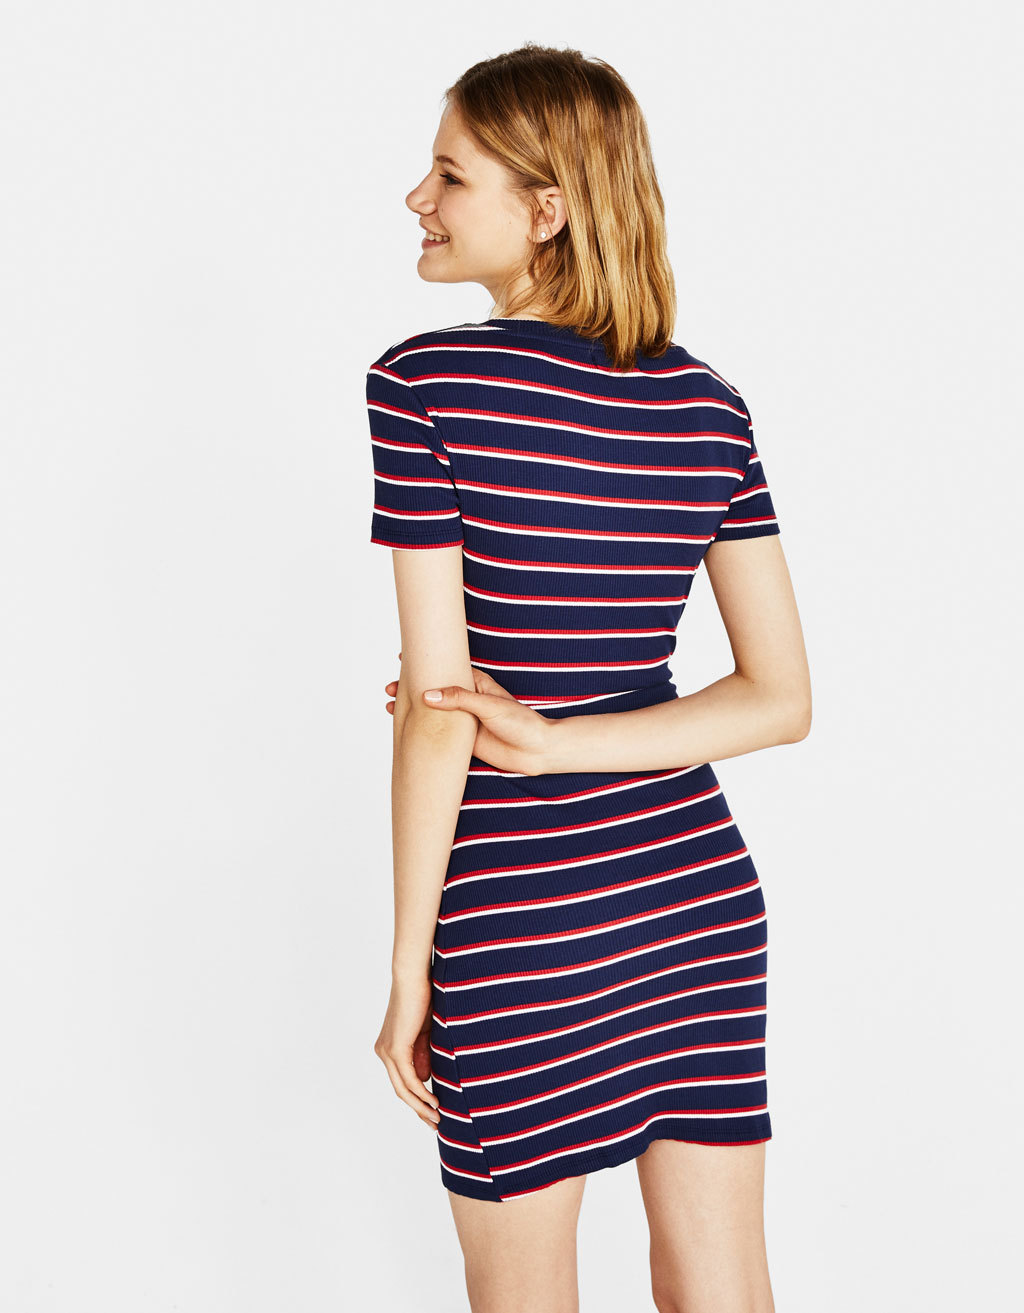 533fcec2e1 Striped dress with front knot